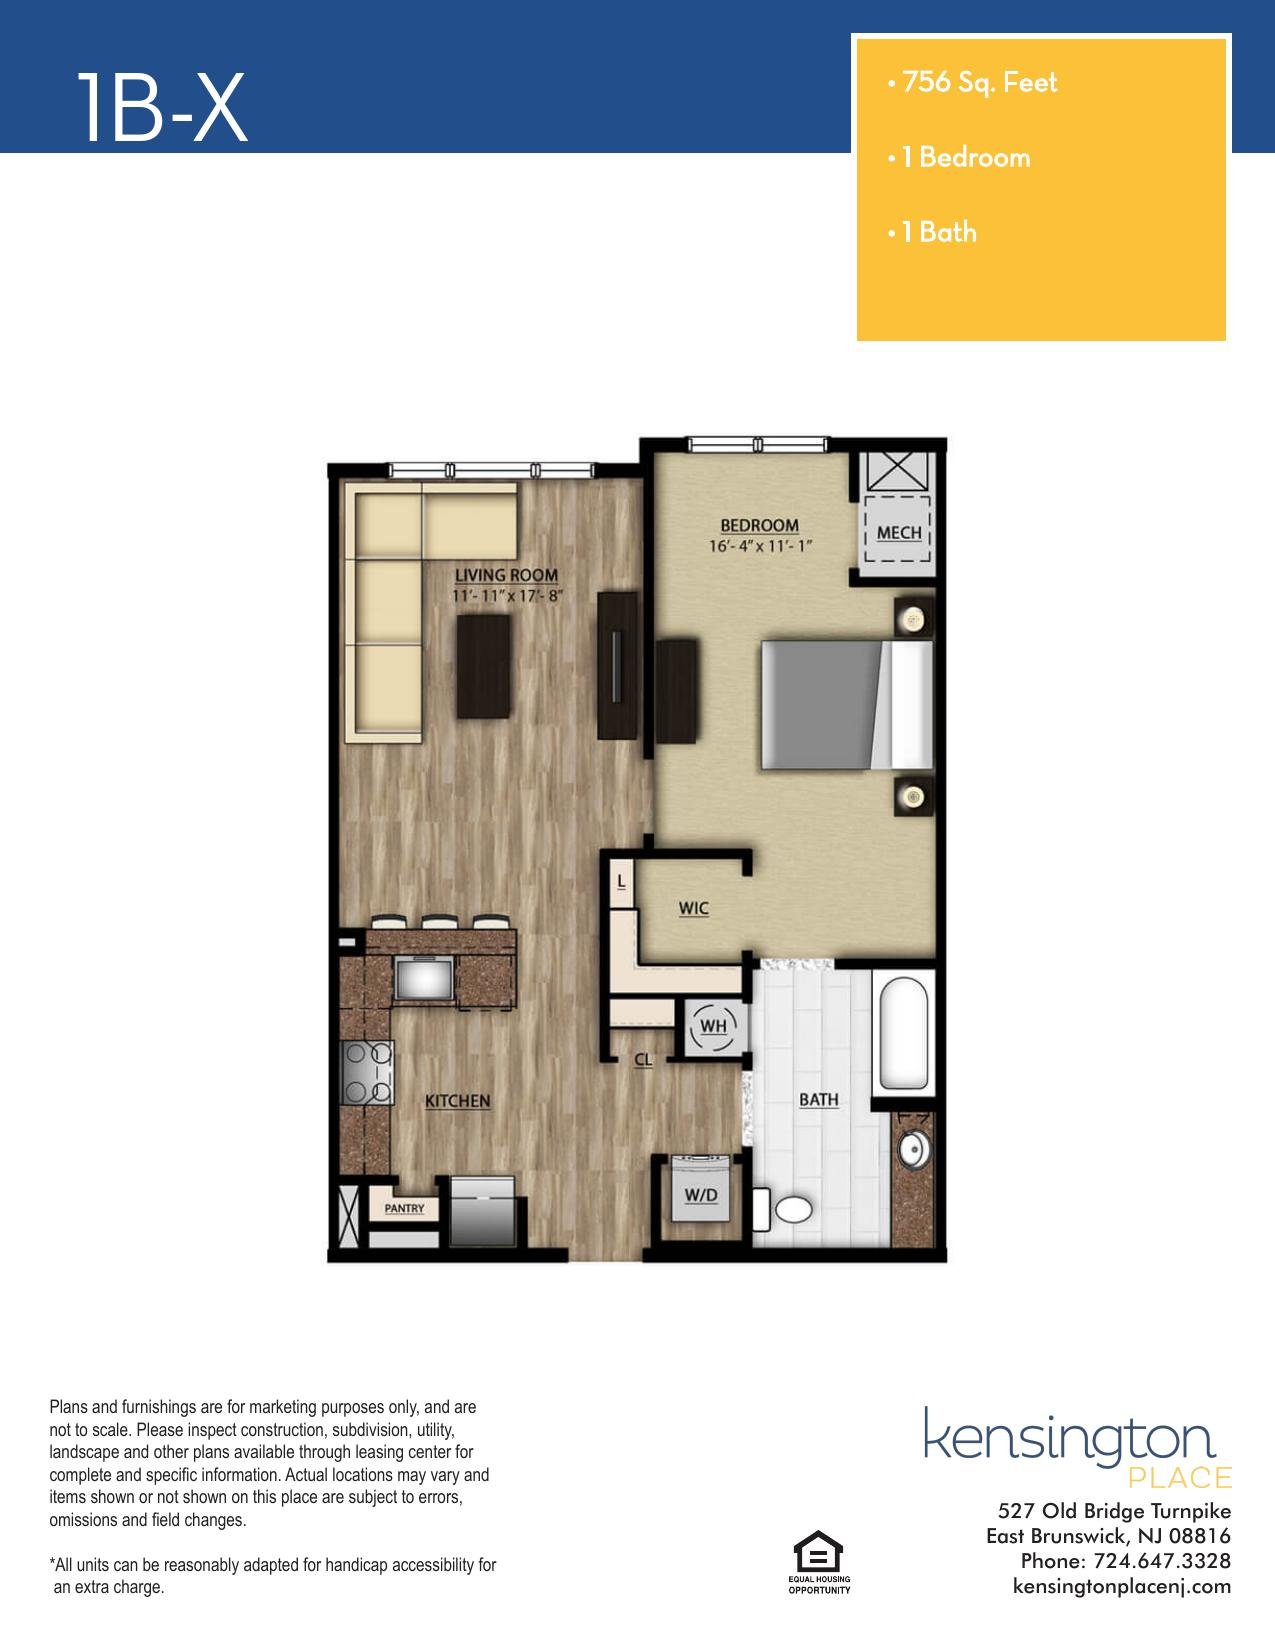 Kensington Place Apartment Floor Plan 1BX